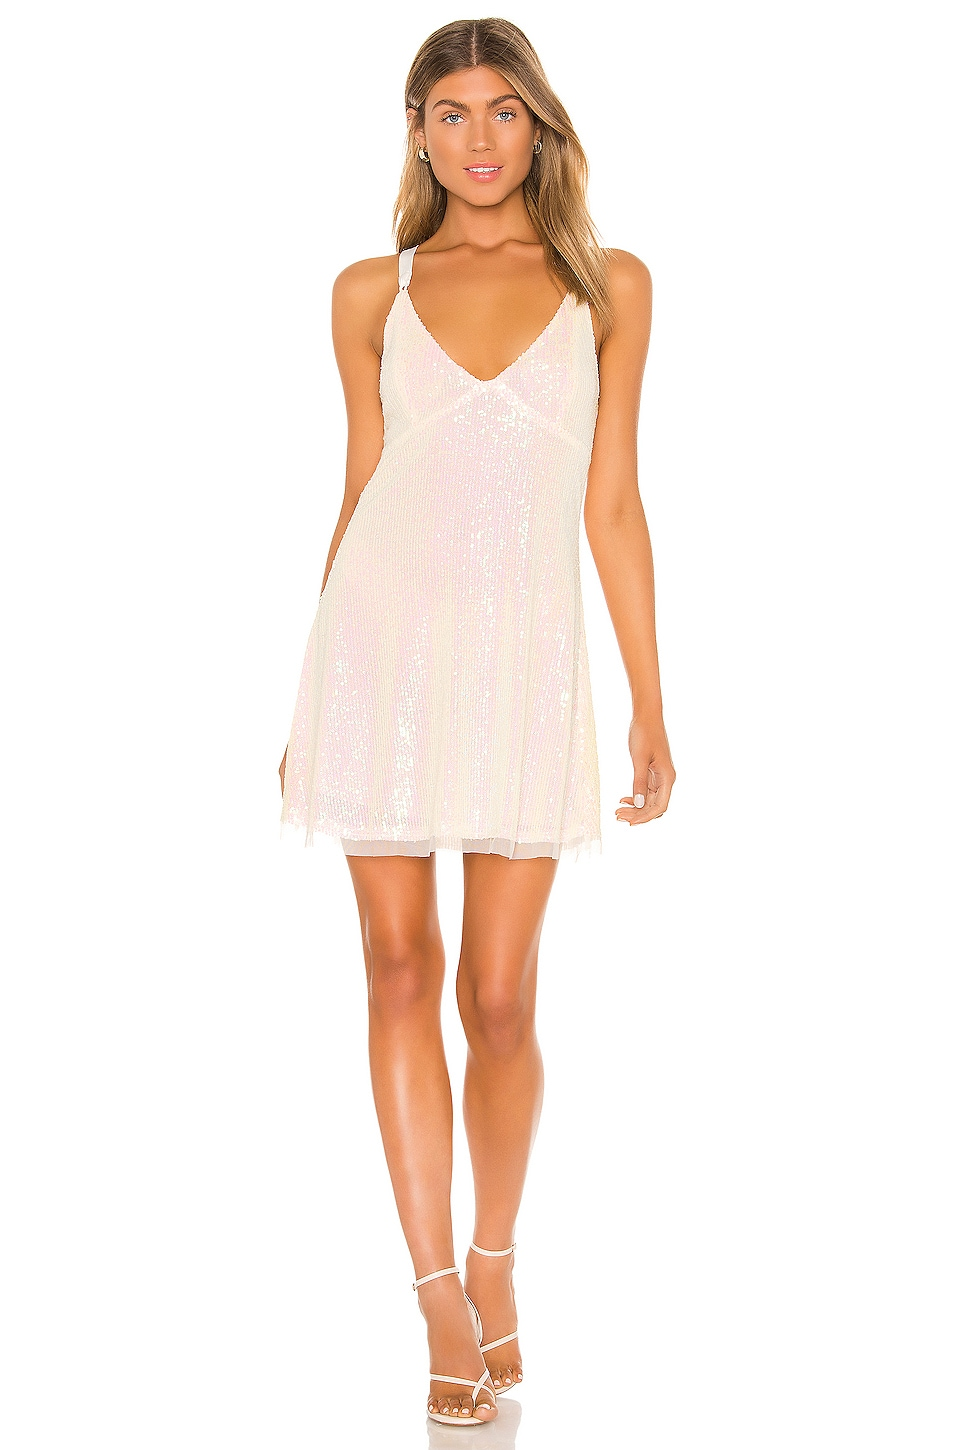 Free People Gold Rush Mini Dress in Ivory